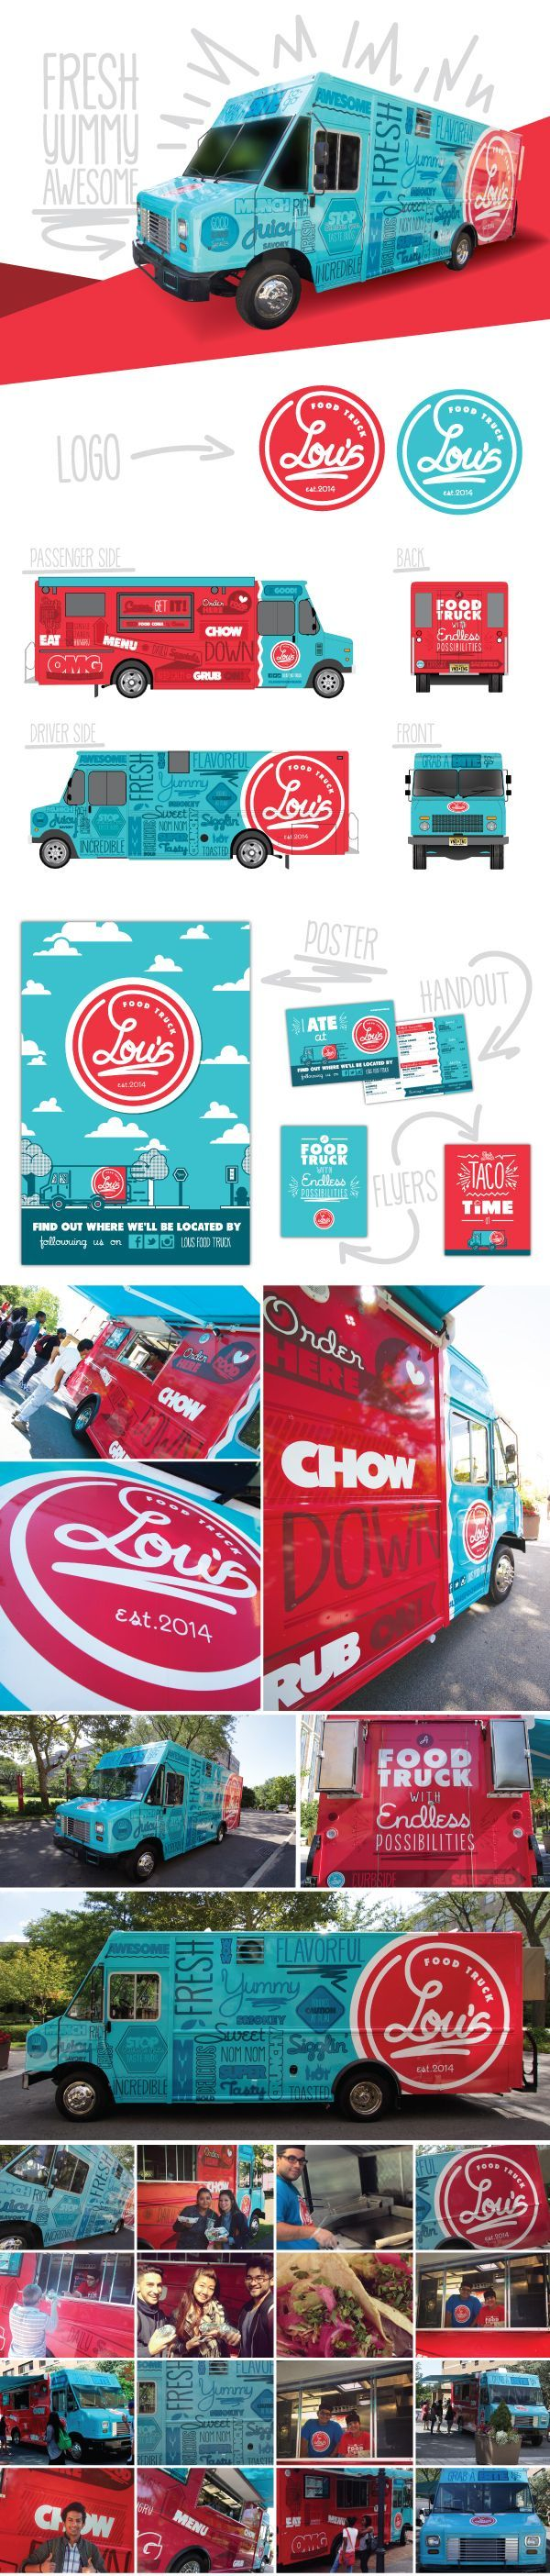 Lou s food truck on behance great use of colors and i love it how this